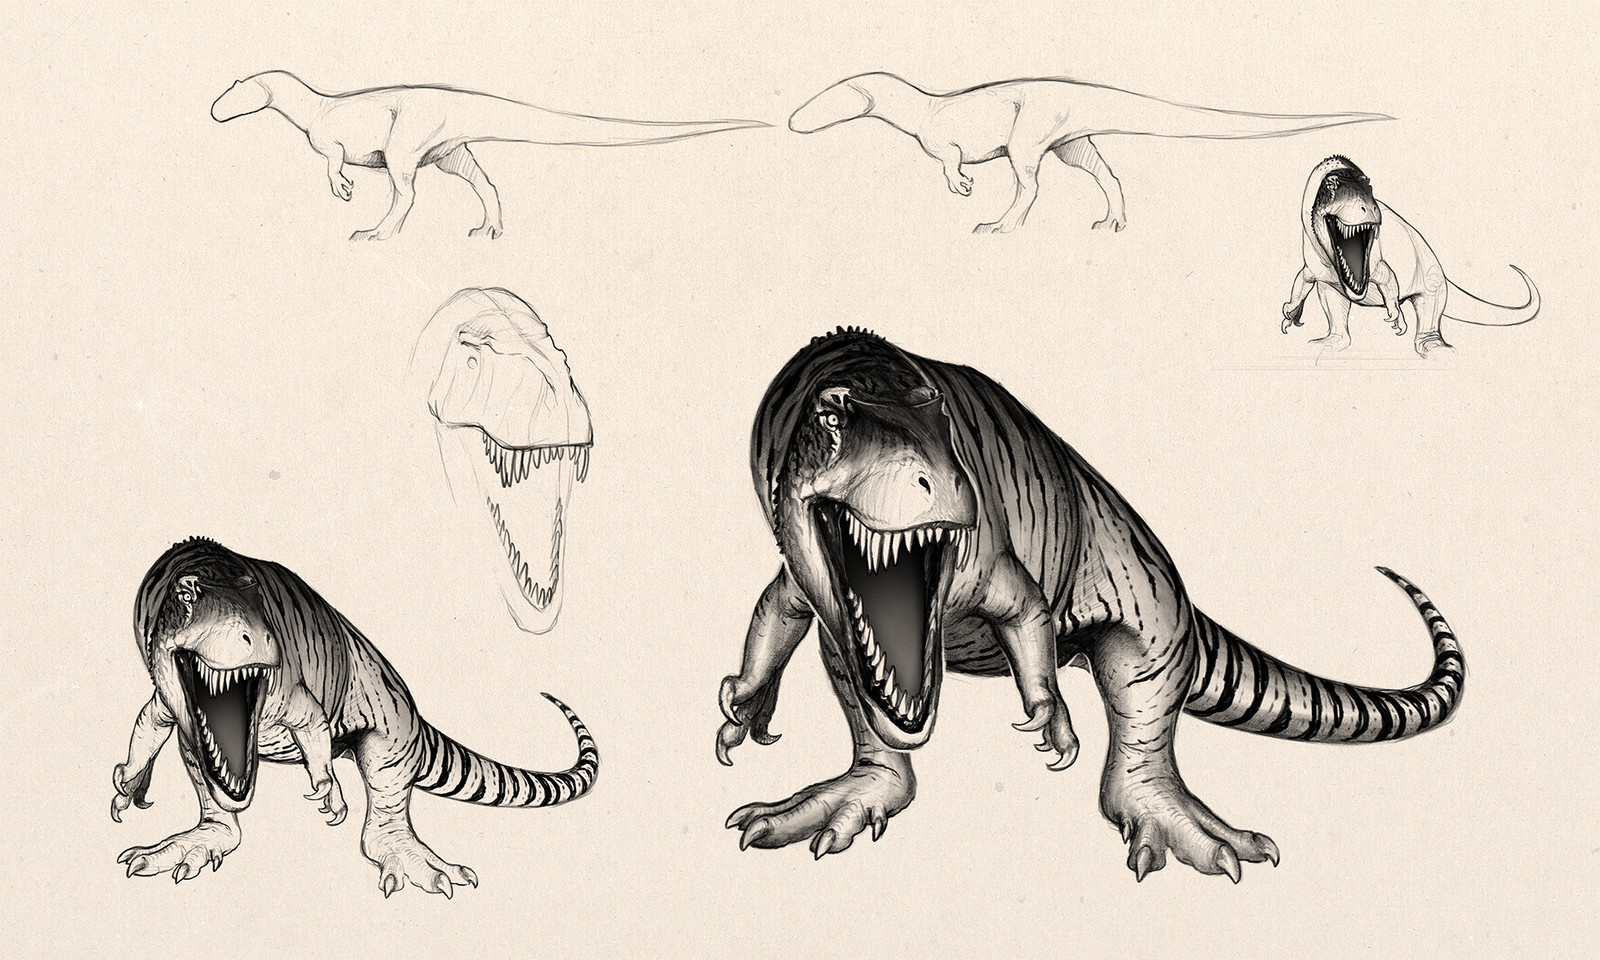 Torvosaurus styled in a very defensive Tiger-like manner, stripes and all.